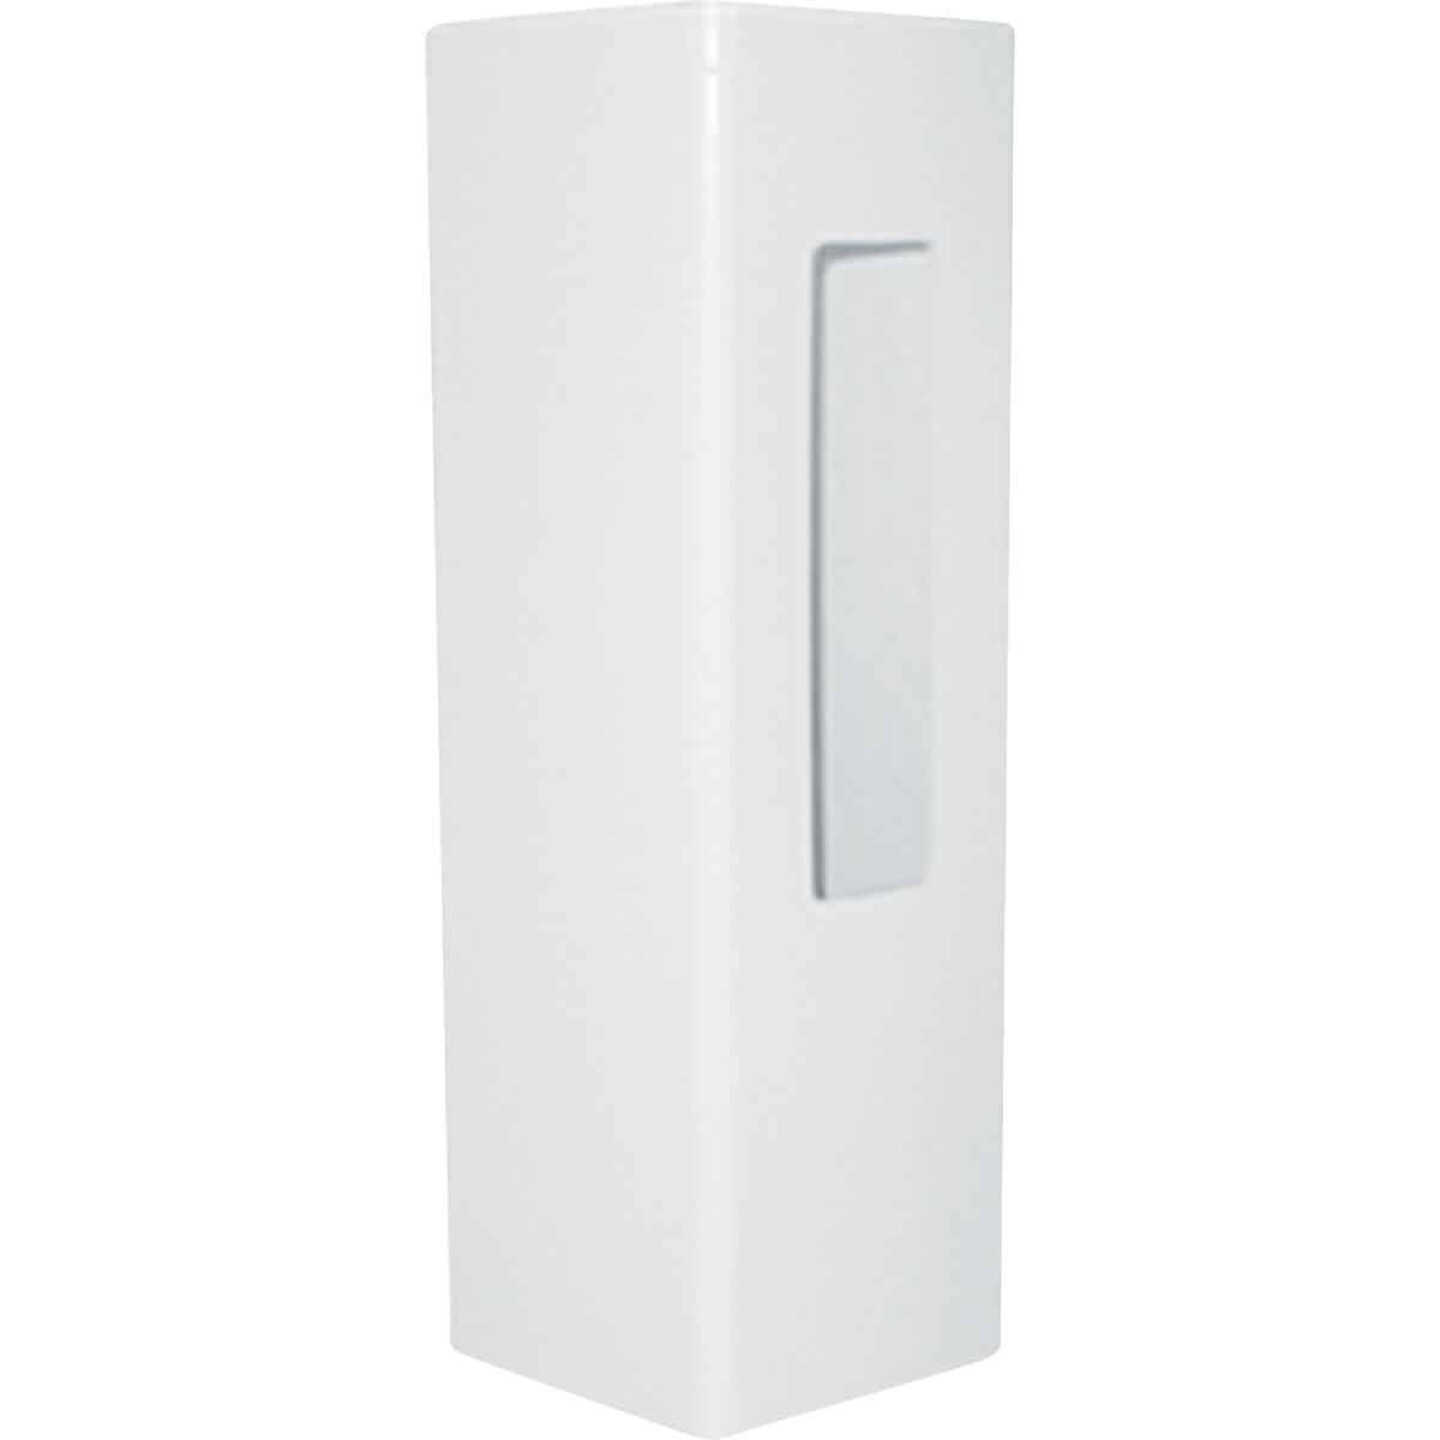 Outdoor Essentials 5 In. x 5 In. x 60 In. White End 2-Rail Fence Vinyl Post Image 2